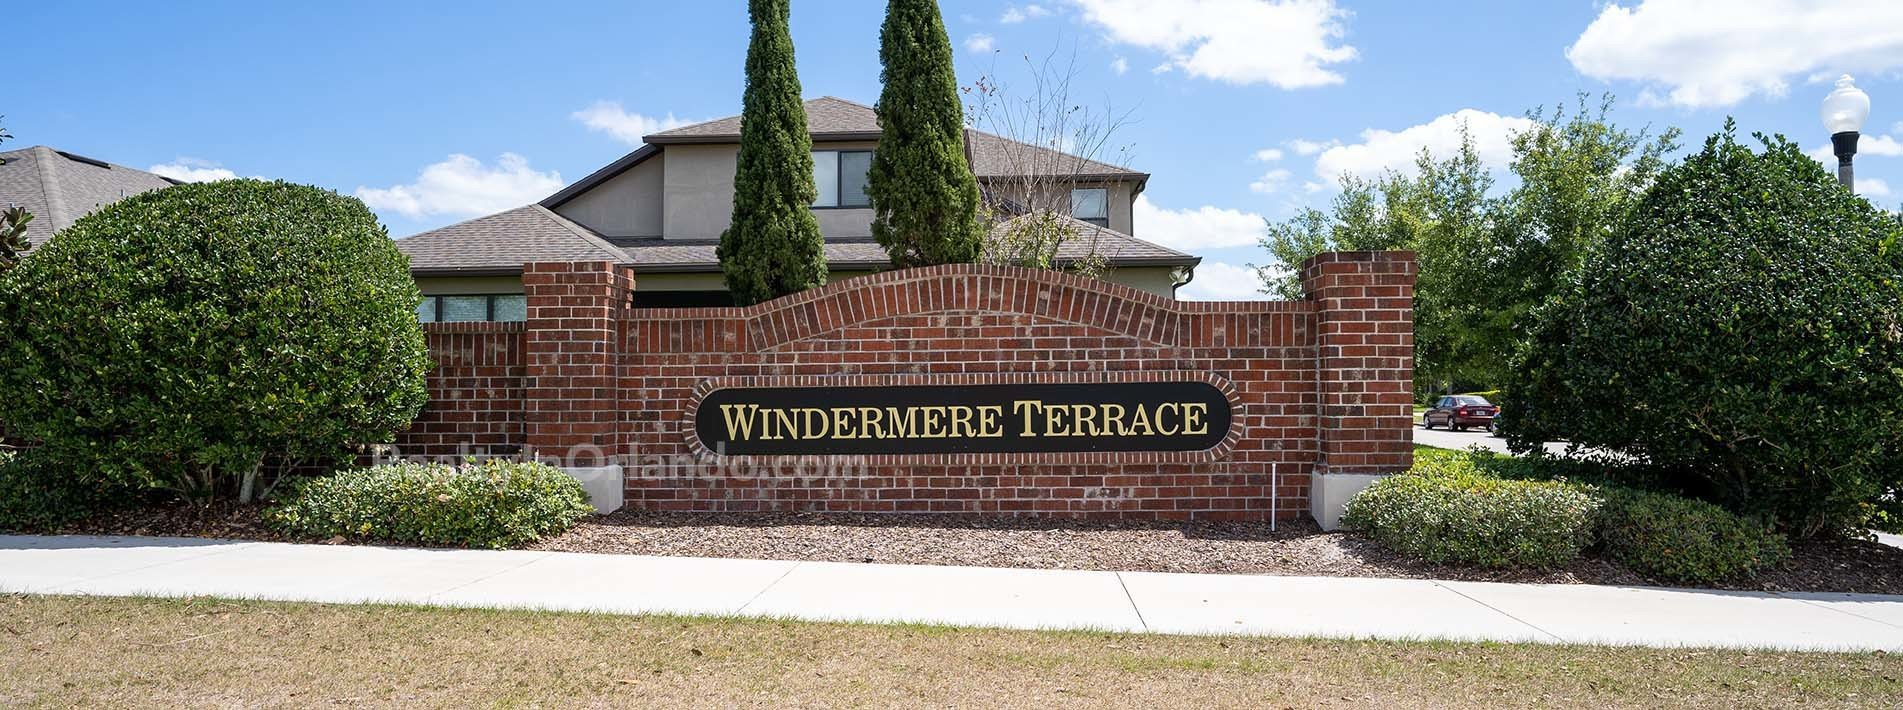 Windermere Terrace Real Estate